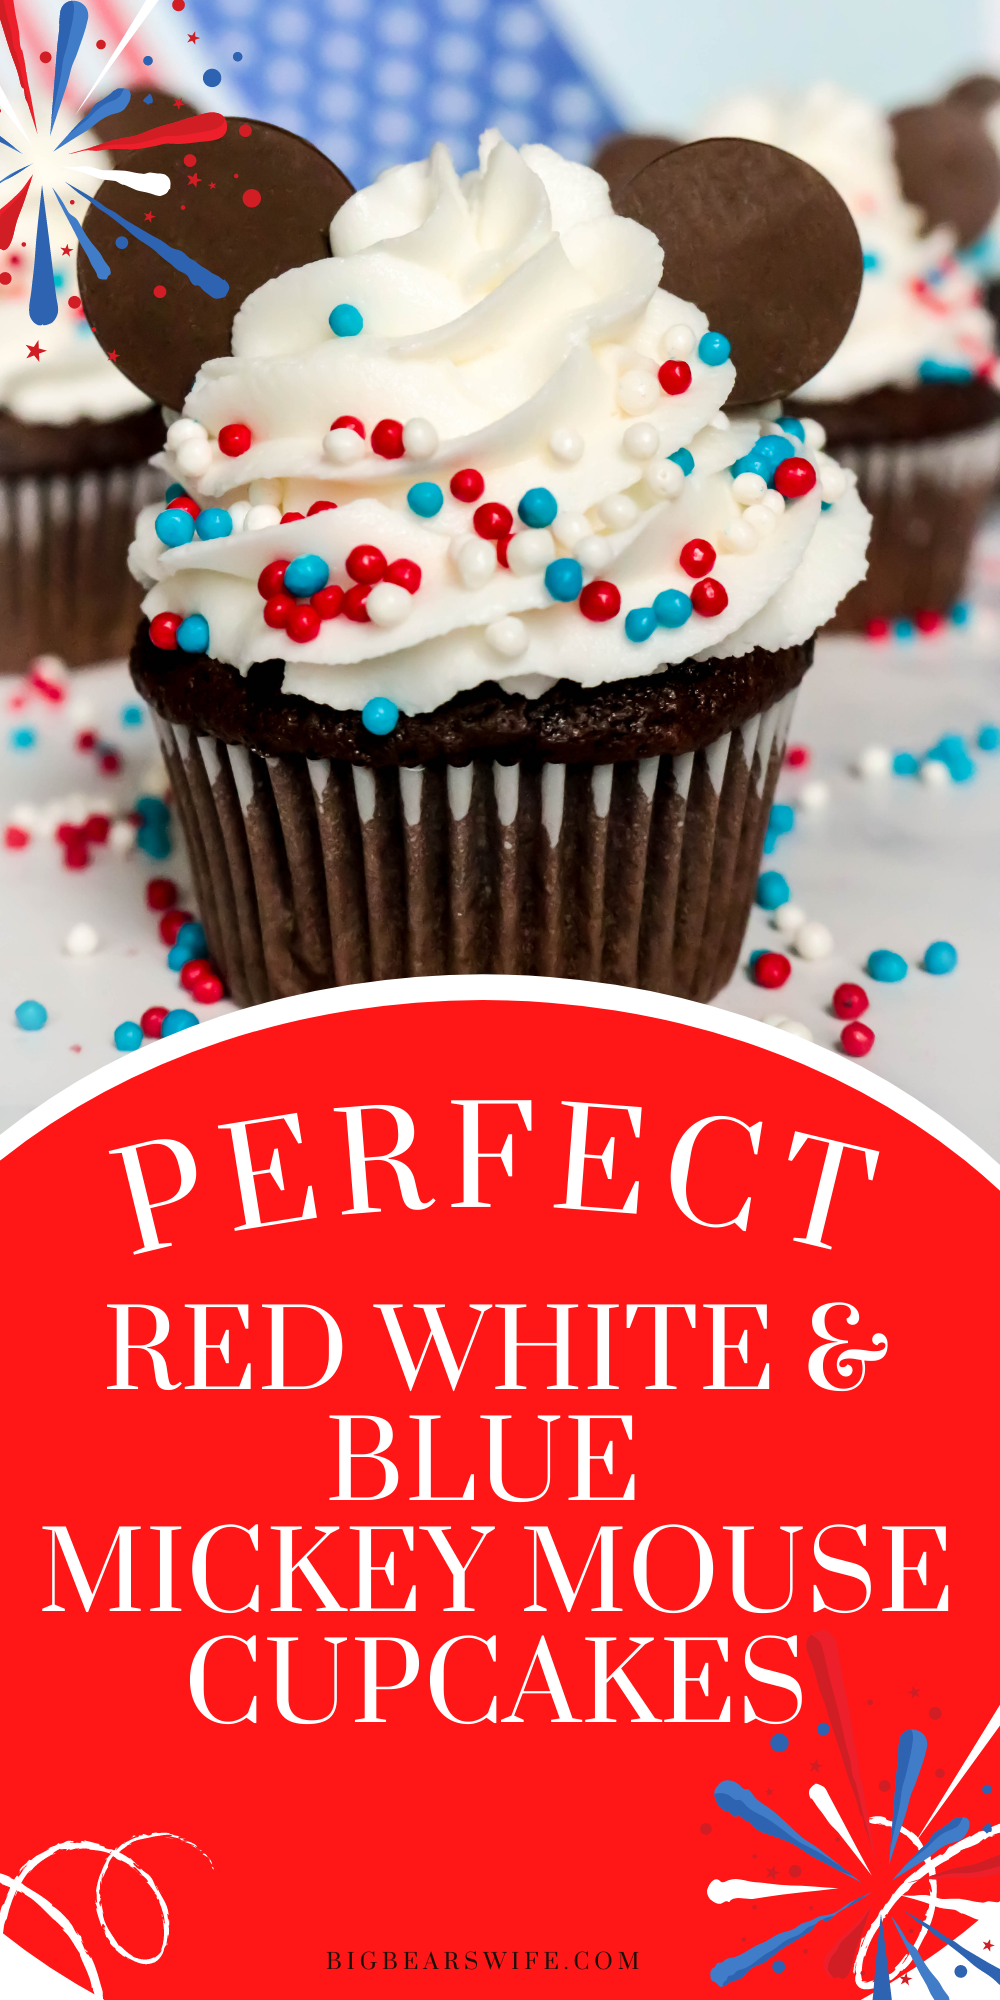 We might not be celebrating the 4th of July at Disney World this year but we're bringing Disney Magic home with these fun and festive 4th of July Mickey Mouse Cupcakes! These are perfect for any patriotic holiday! via @bigbearswife